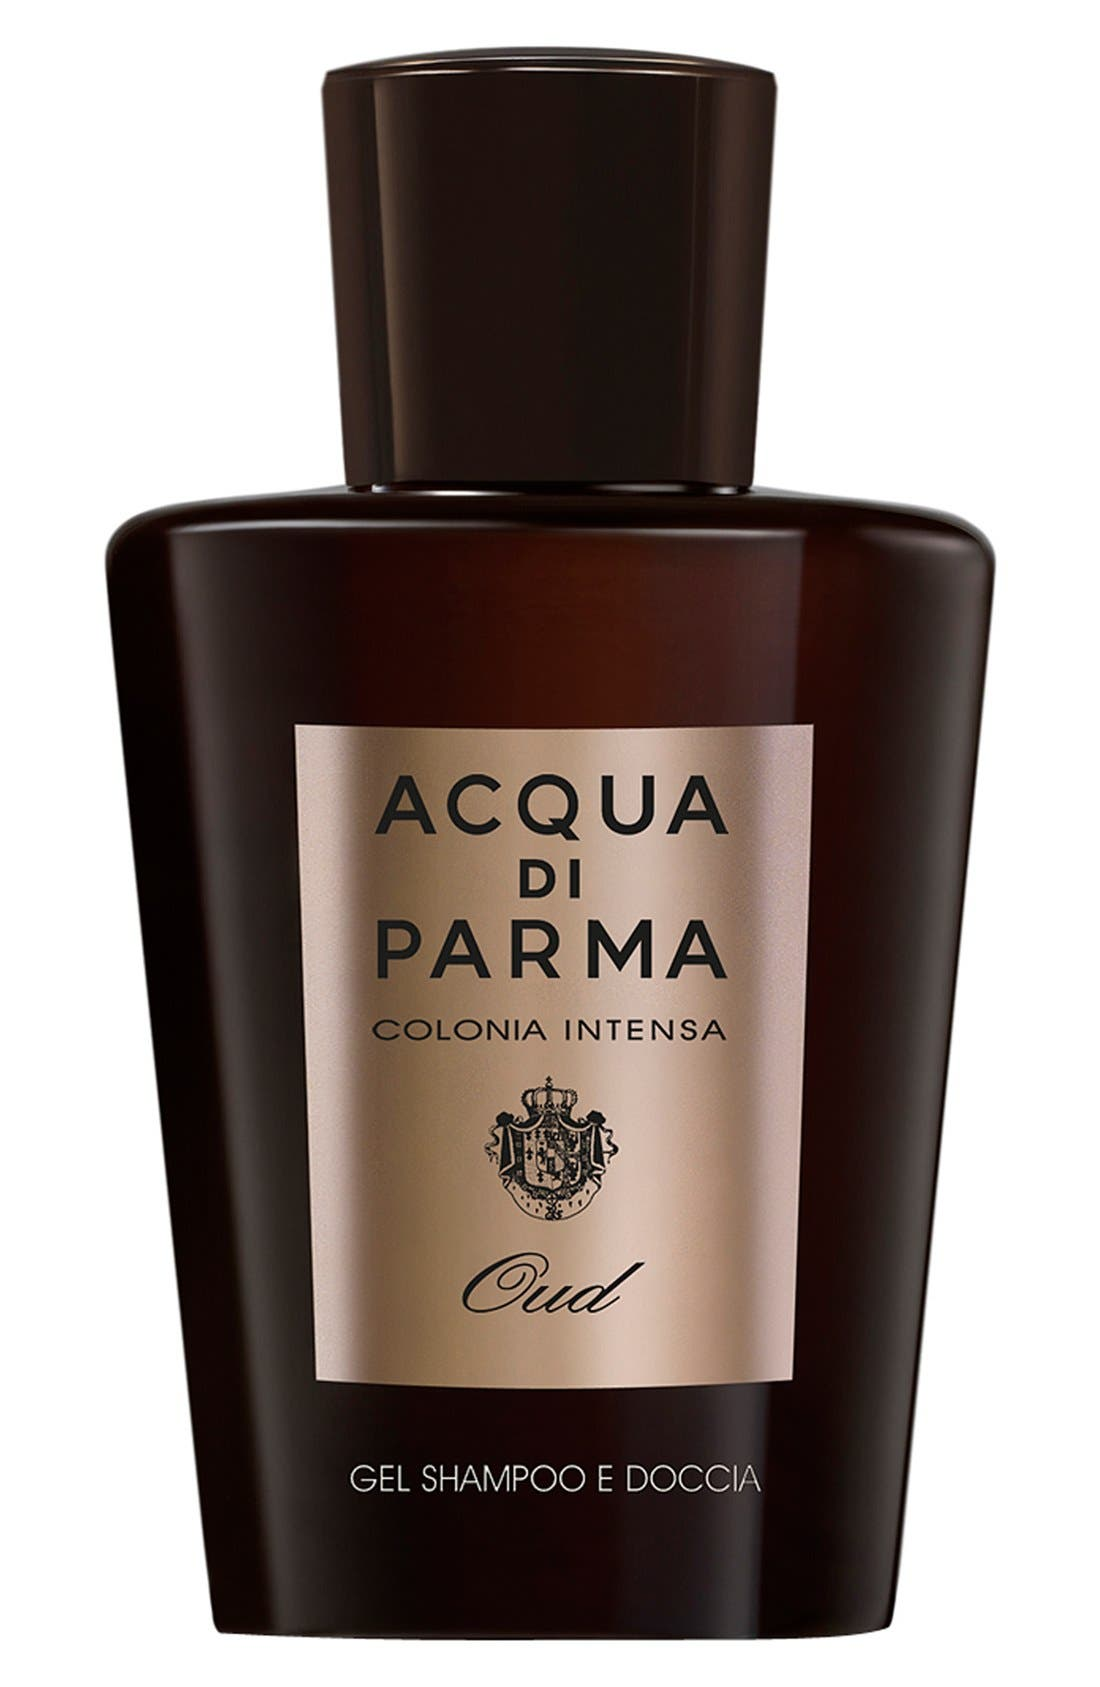 Acqua di Parma 'Colonia Intensa Oud' Shampoo & Shower Gel